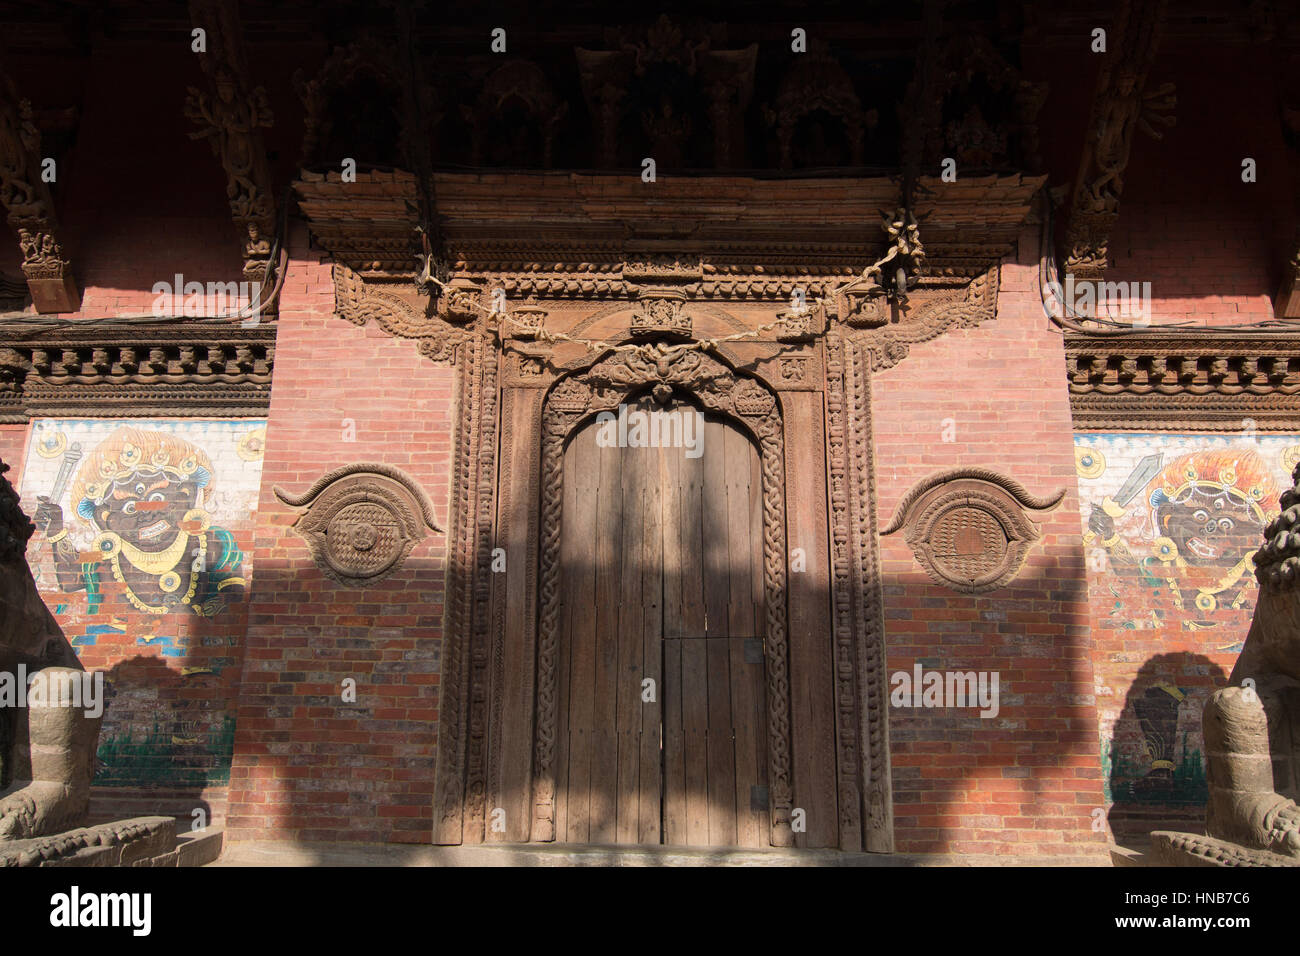 Intricately carved wooden door and lintel of an old building in Bhaktapur, Kathmandu with religious motifs - Stock Image